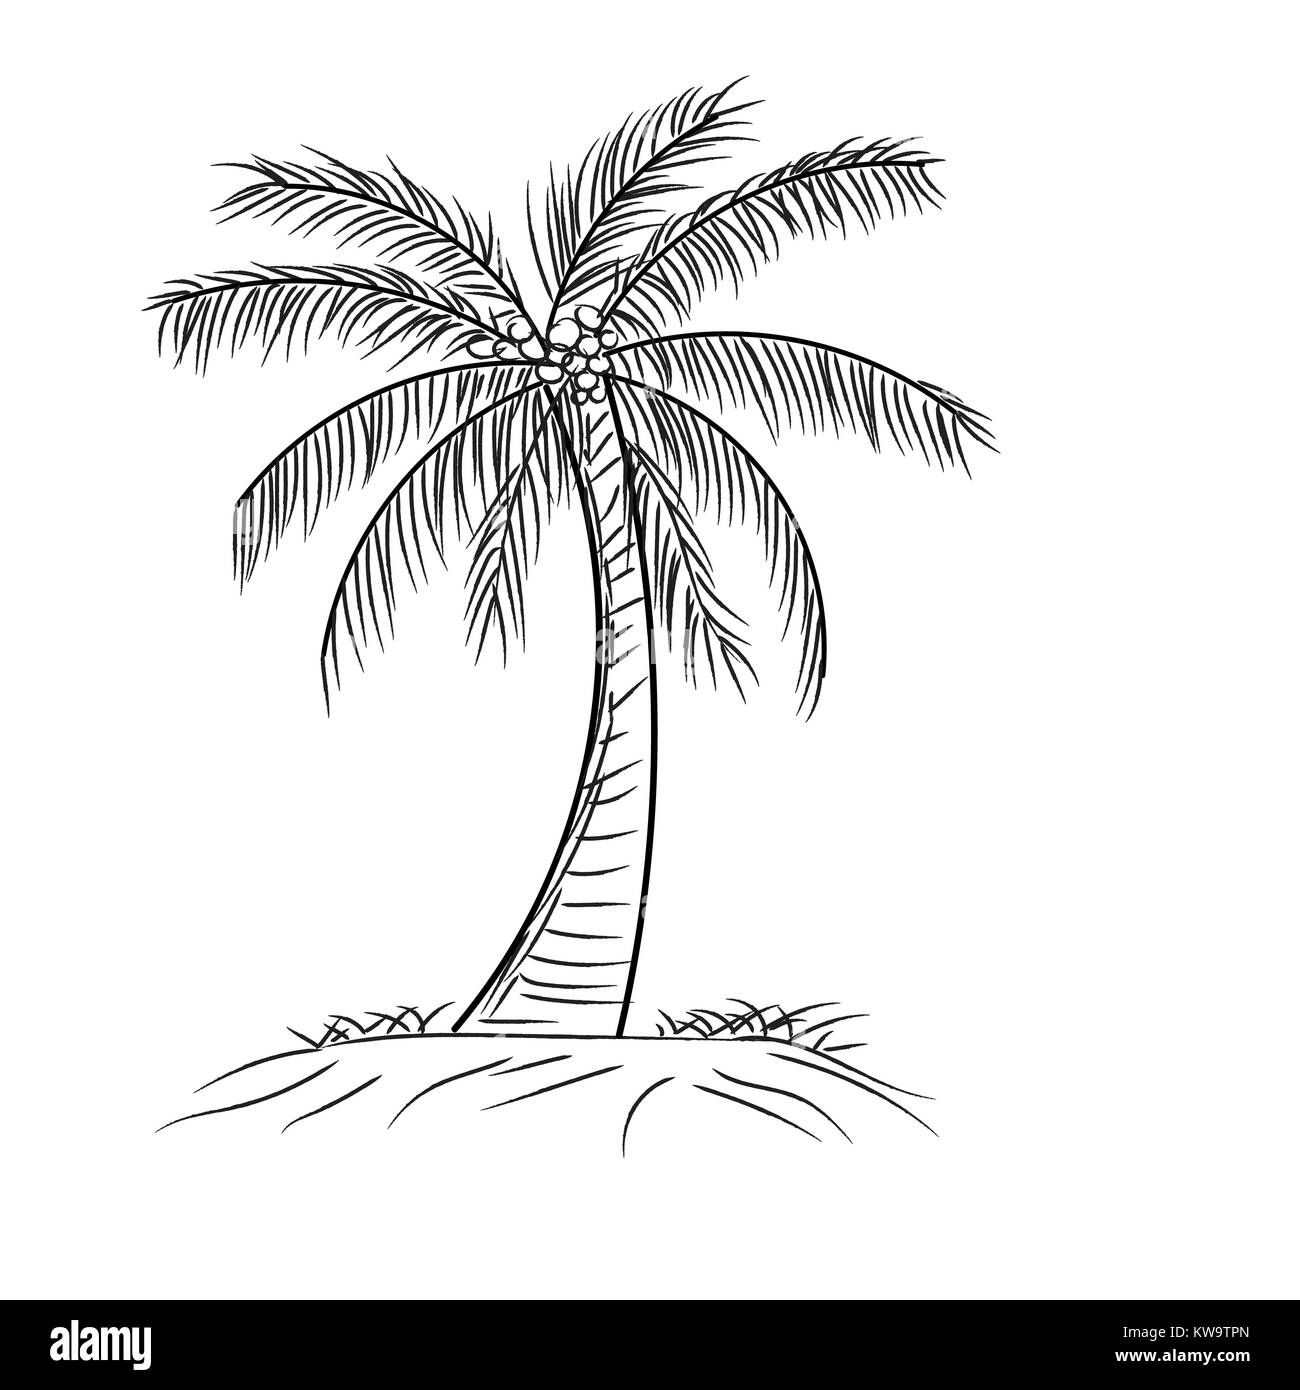 Palm tree coconut with leaves hand drawn style design in outline monochrome contour on white